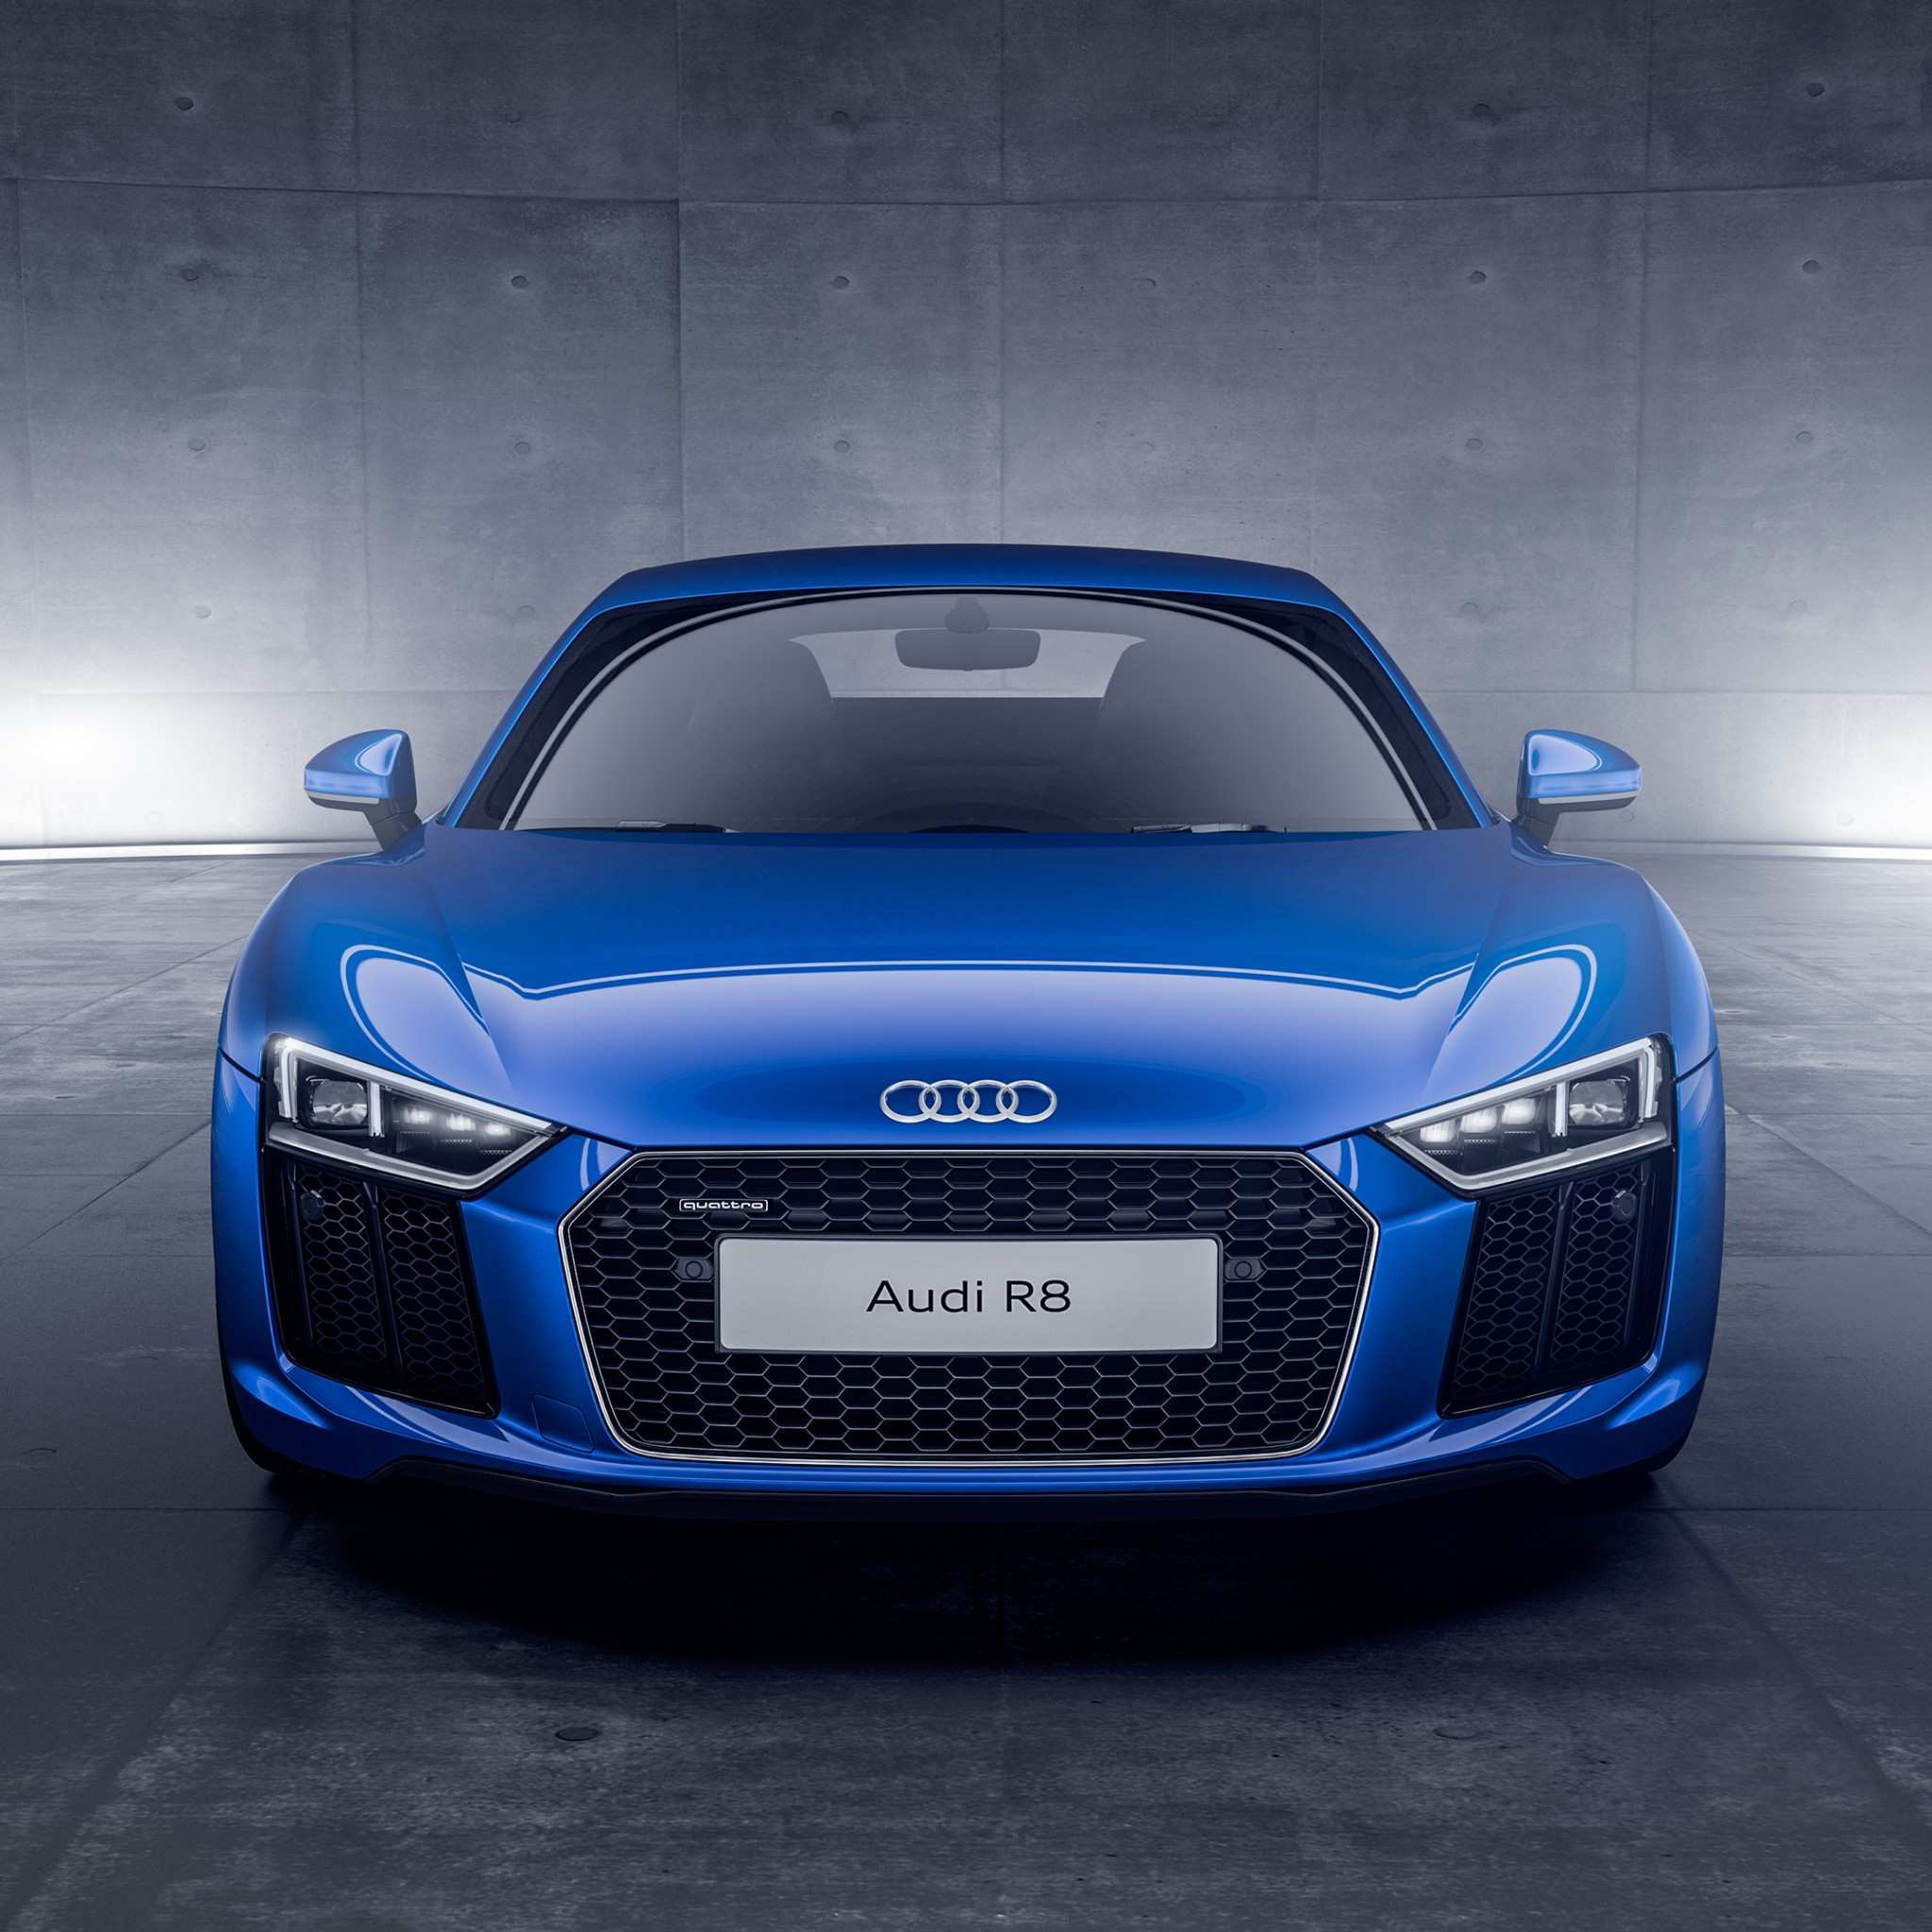 35 New 2020 Audi R8 LMXs Price Design And Review